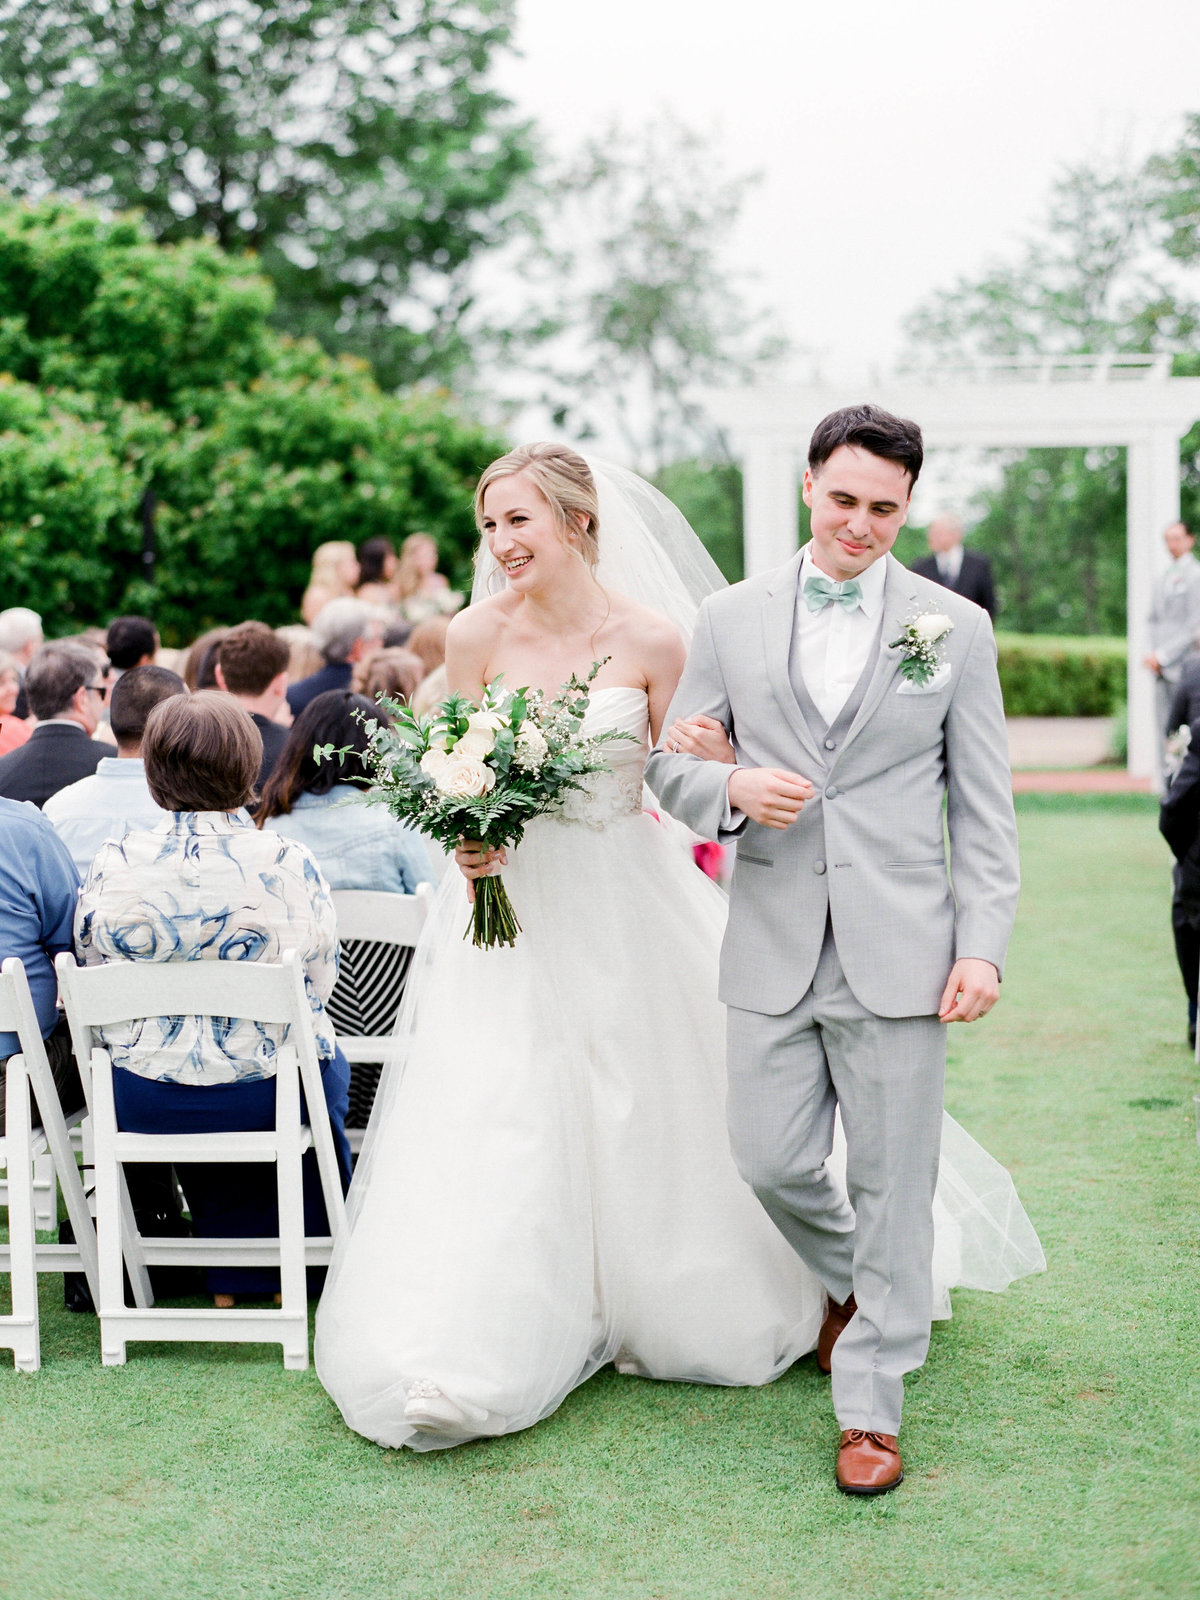 KlaireDixius_VirginiaFineArtWeddingPhotographer_Virginia_Wedding_JosephBlaire_Film-8